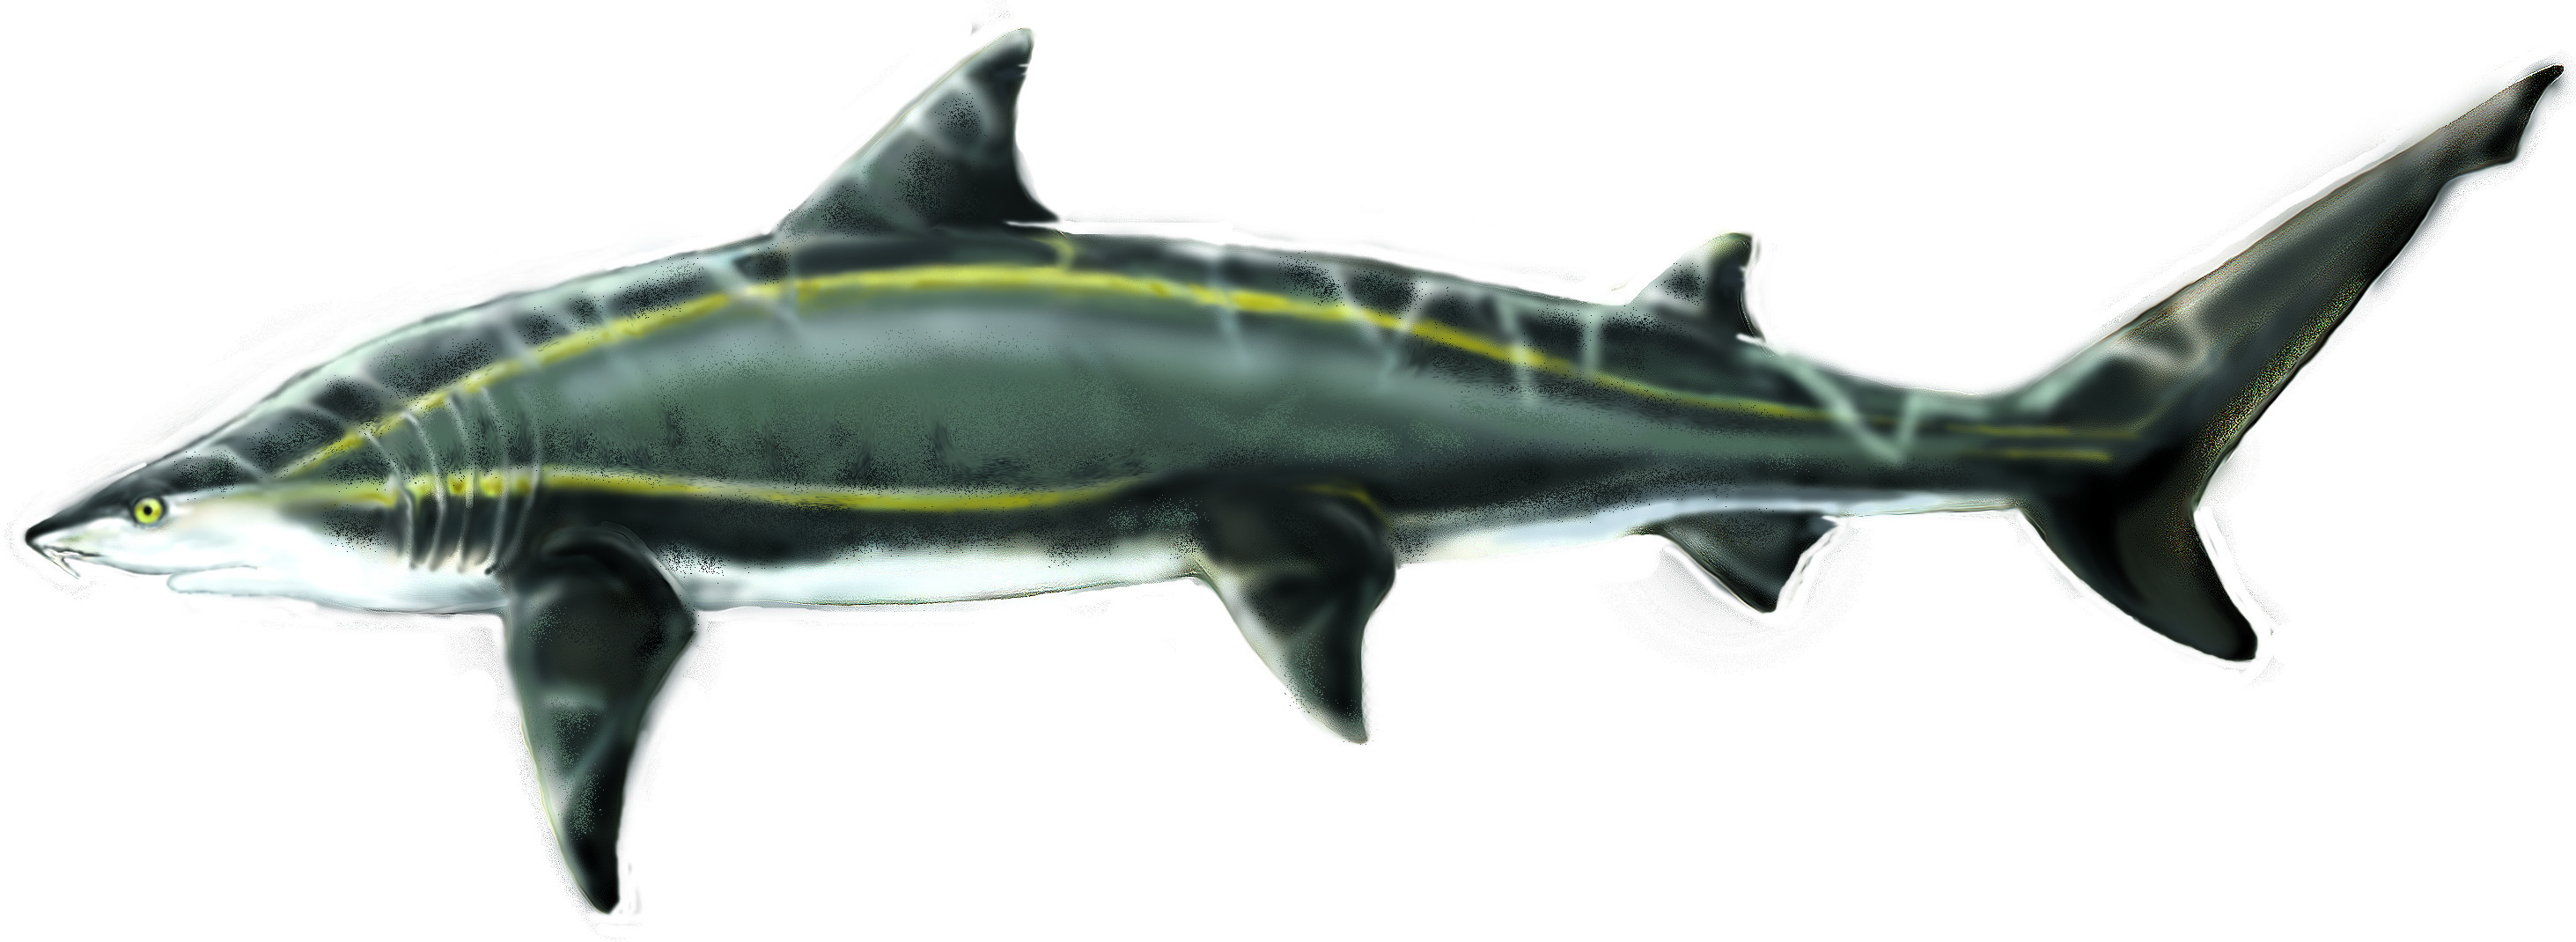 Snaggletooth Shark Information - Hemipristis shark facts and ...